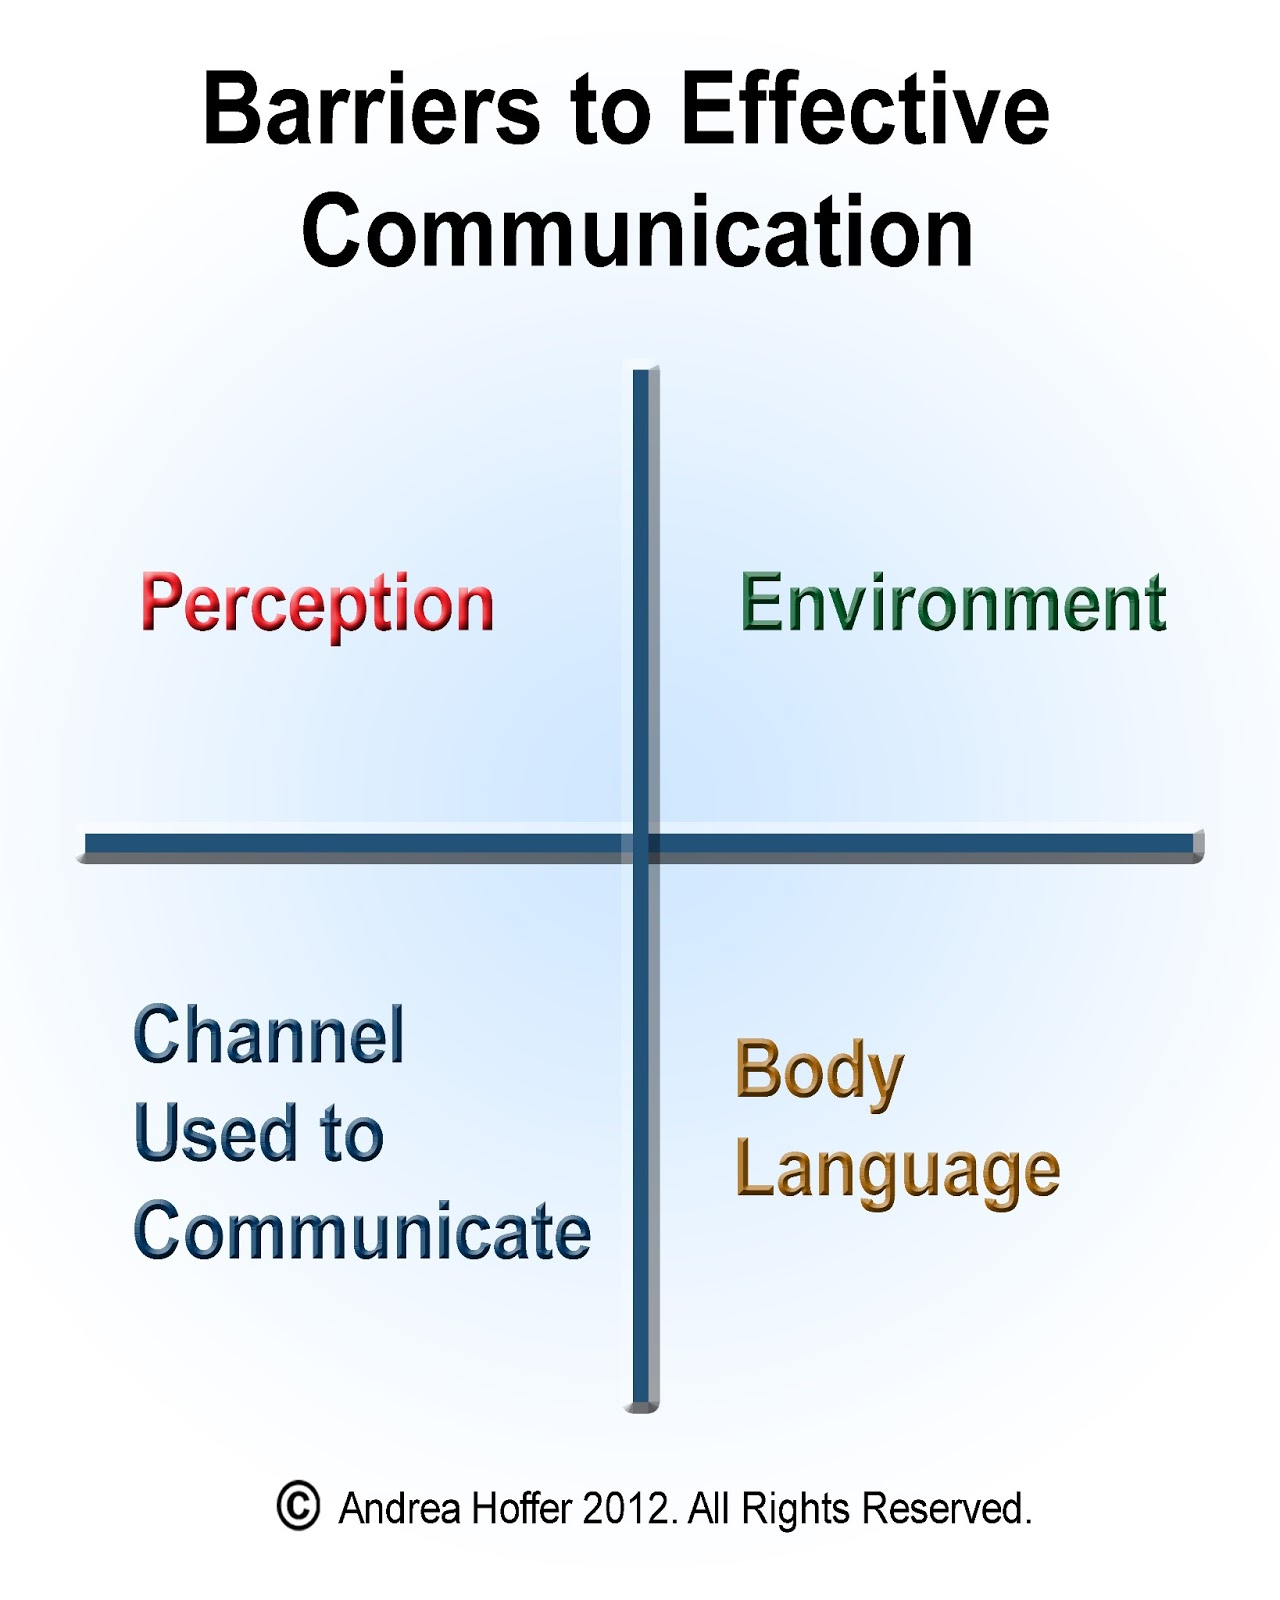 Top 10 Barriers to Effective Communication